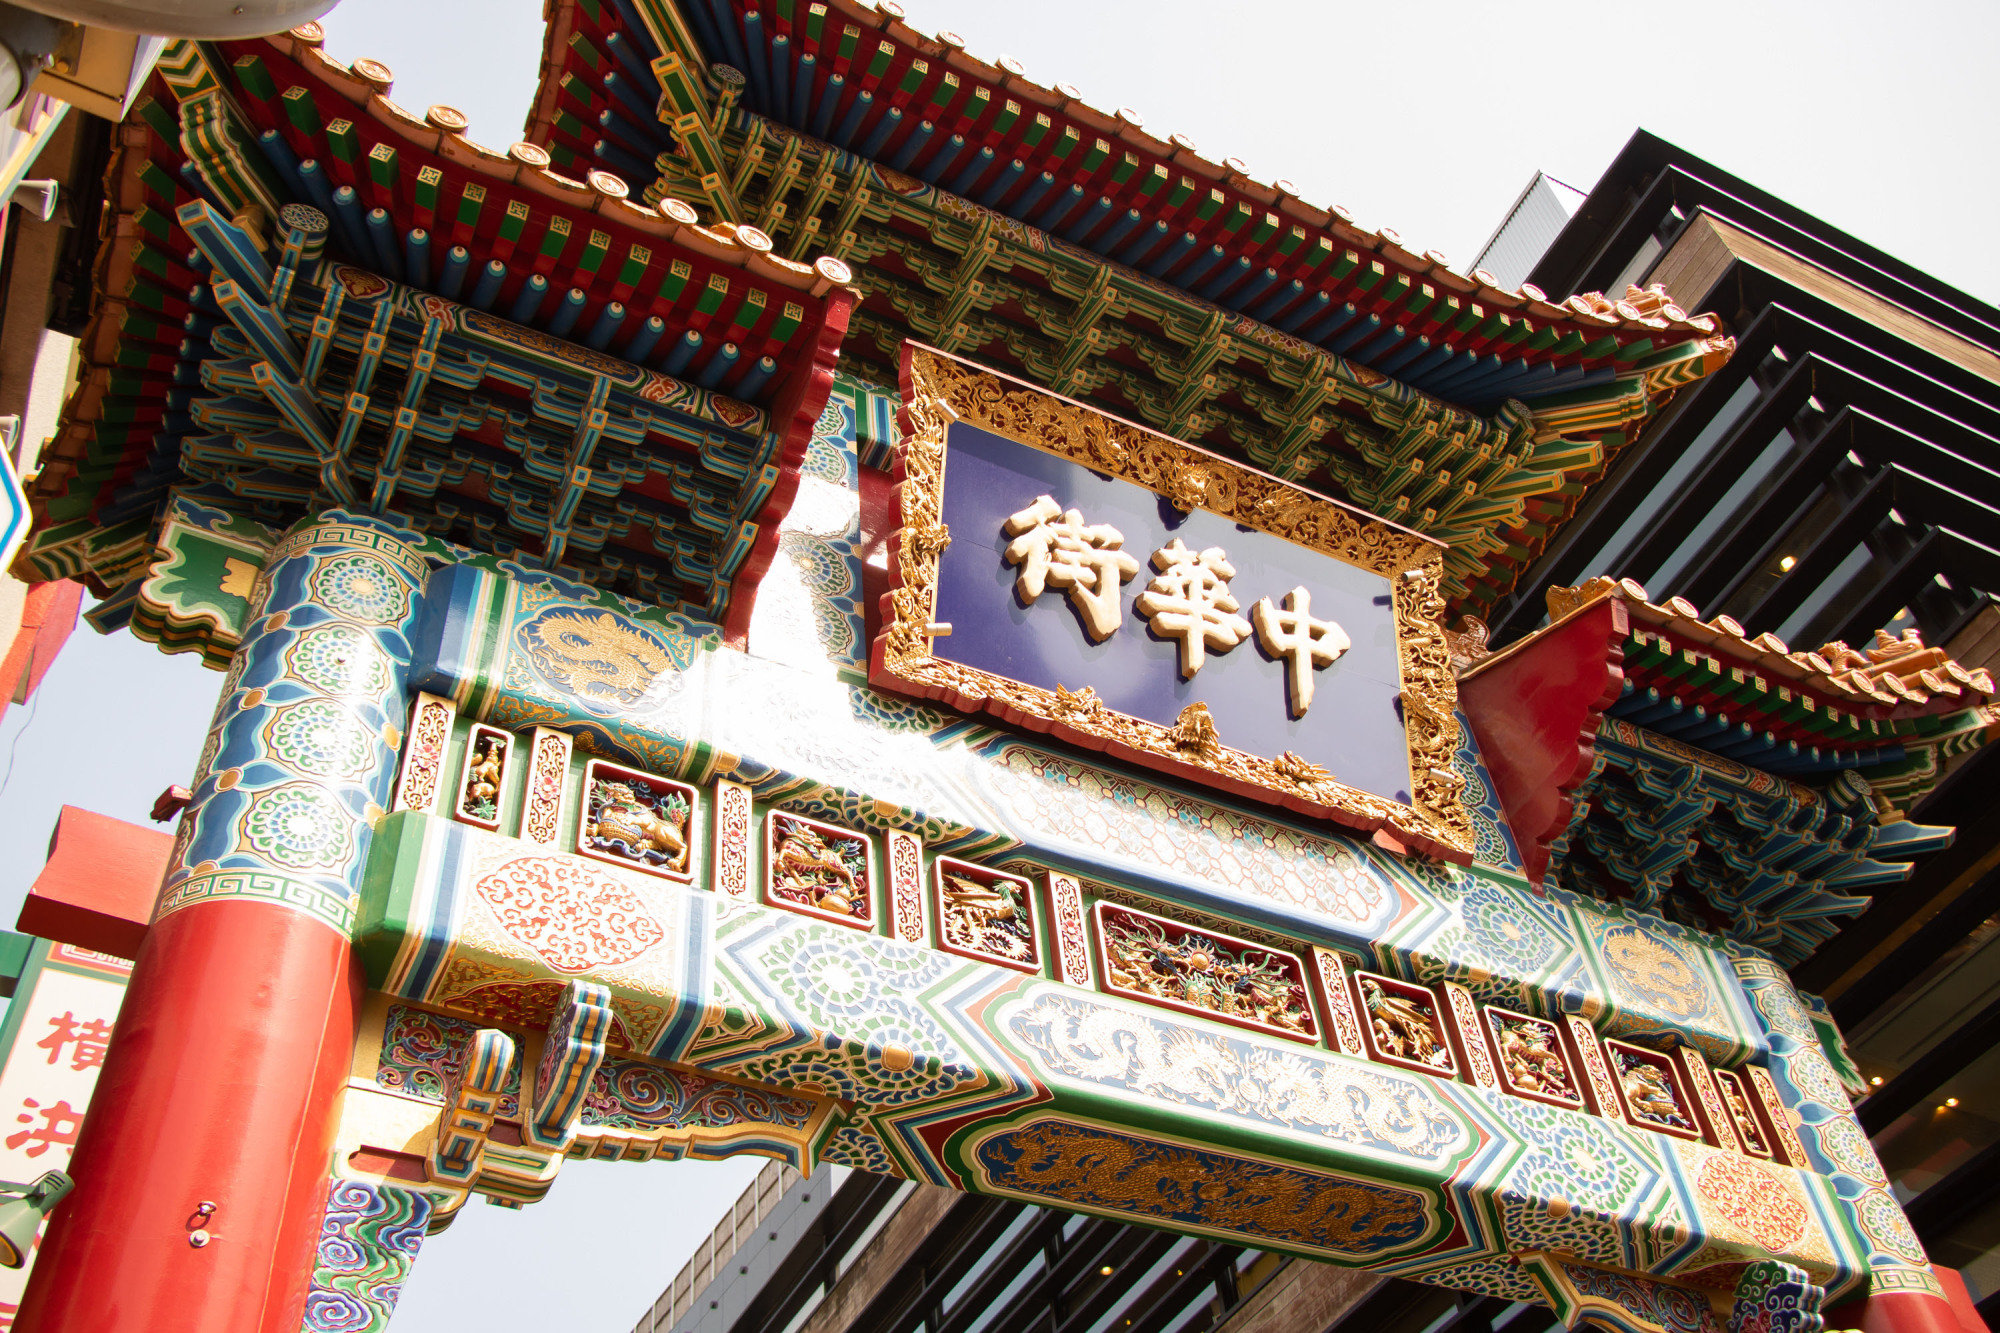 Yokohama's Chinatown is home to more than 600 shops, a large number of which specializes in different kinds of food. | GETTY IMAGES